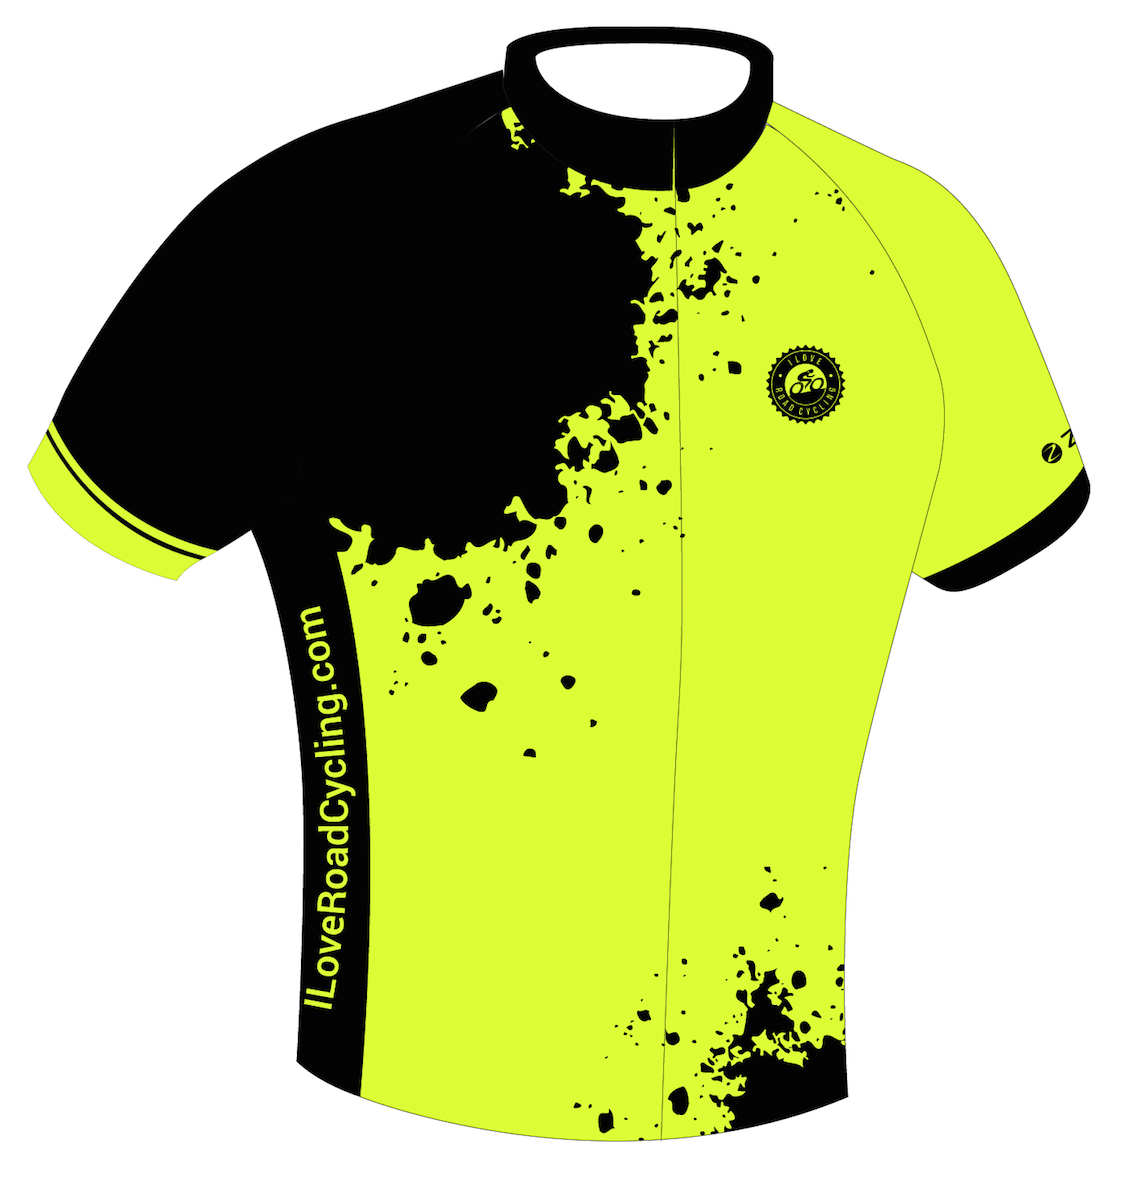 WOMENS I Love Road Cycling Hi Viz Splatter Race Fit Cycling Jersey